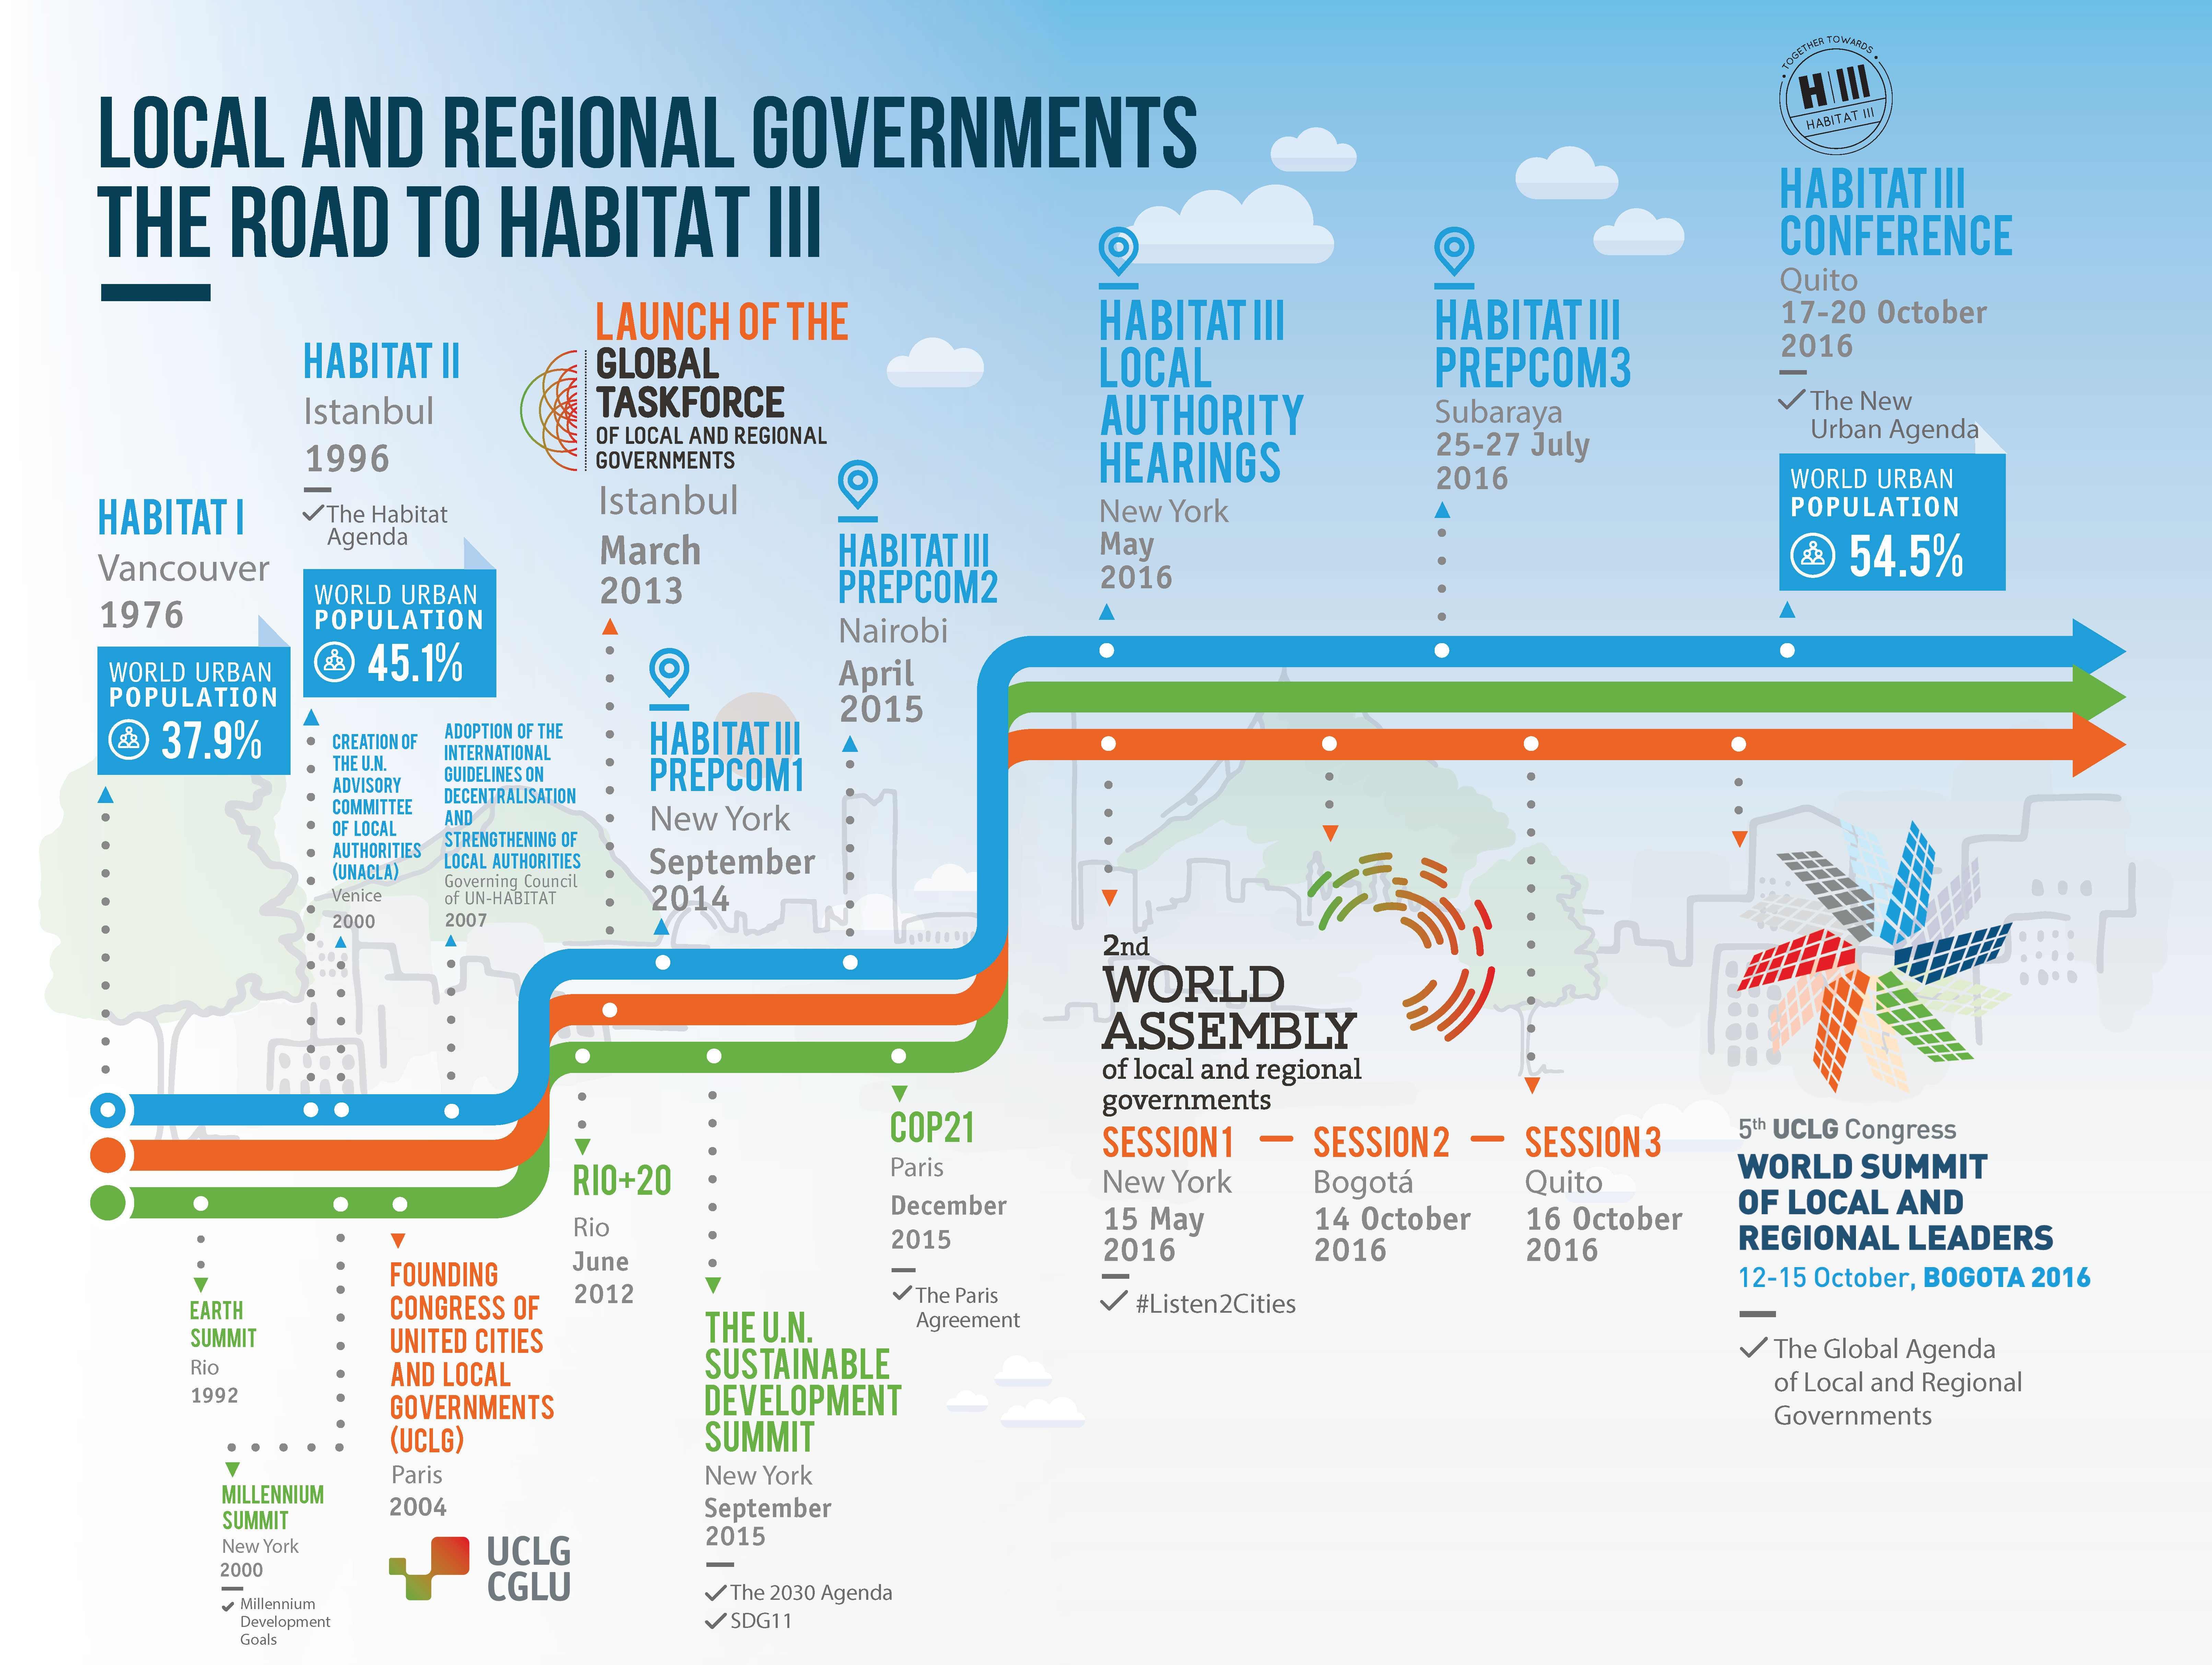 Local Governments the road to HabitatIII